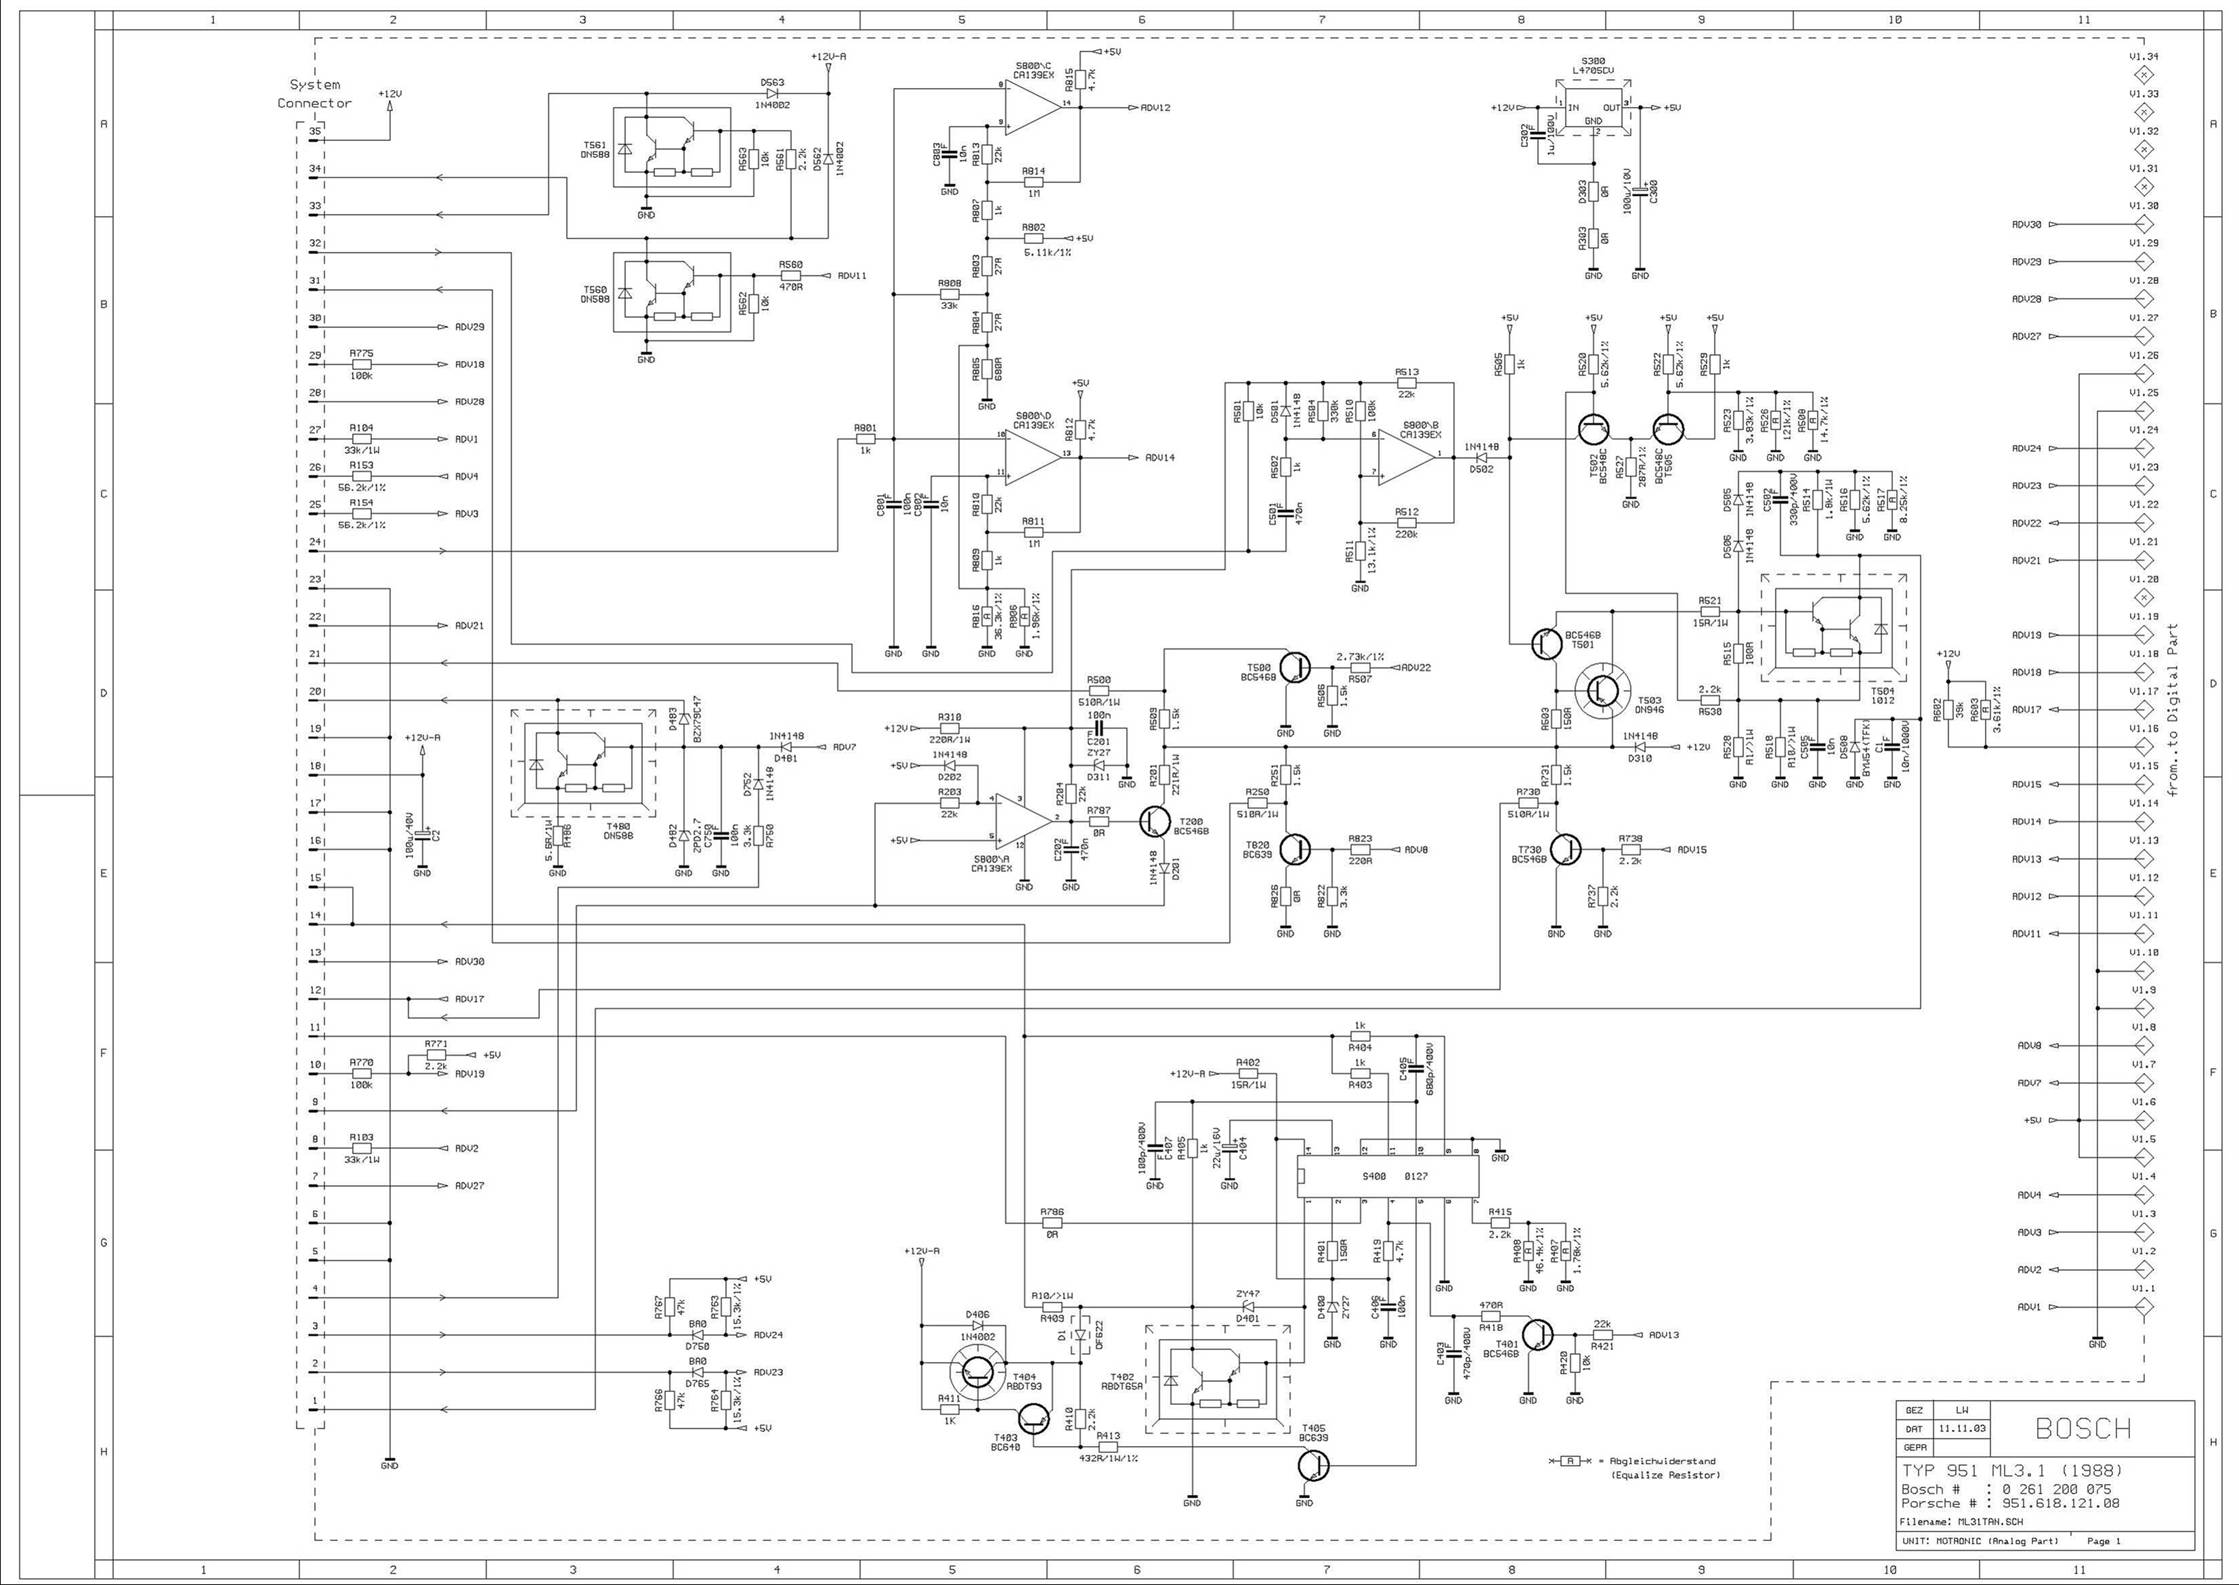 Kenwood Ddx7017 Wiring Diagram from i1.wp.com